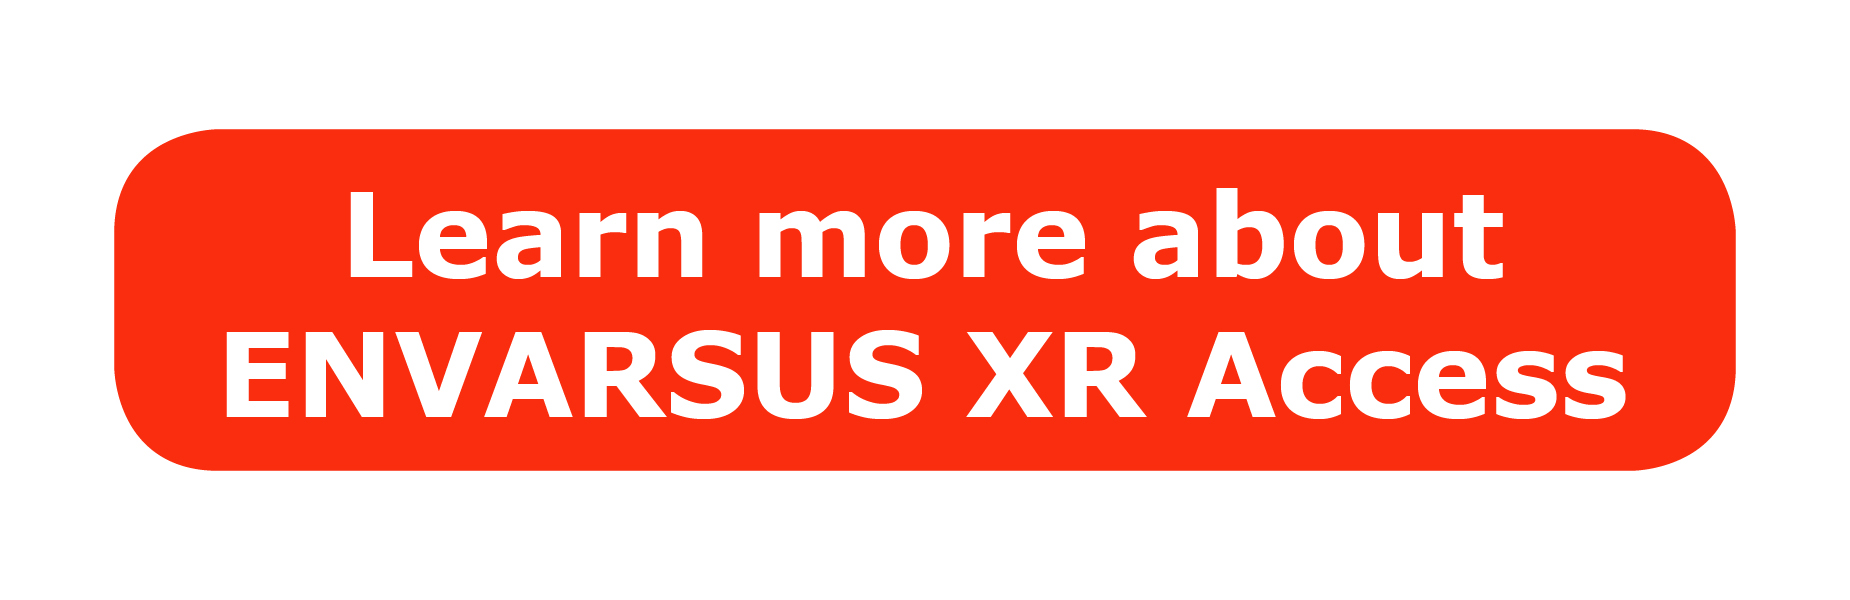 Learn more about ENVARSUS XR Access